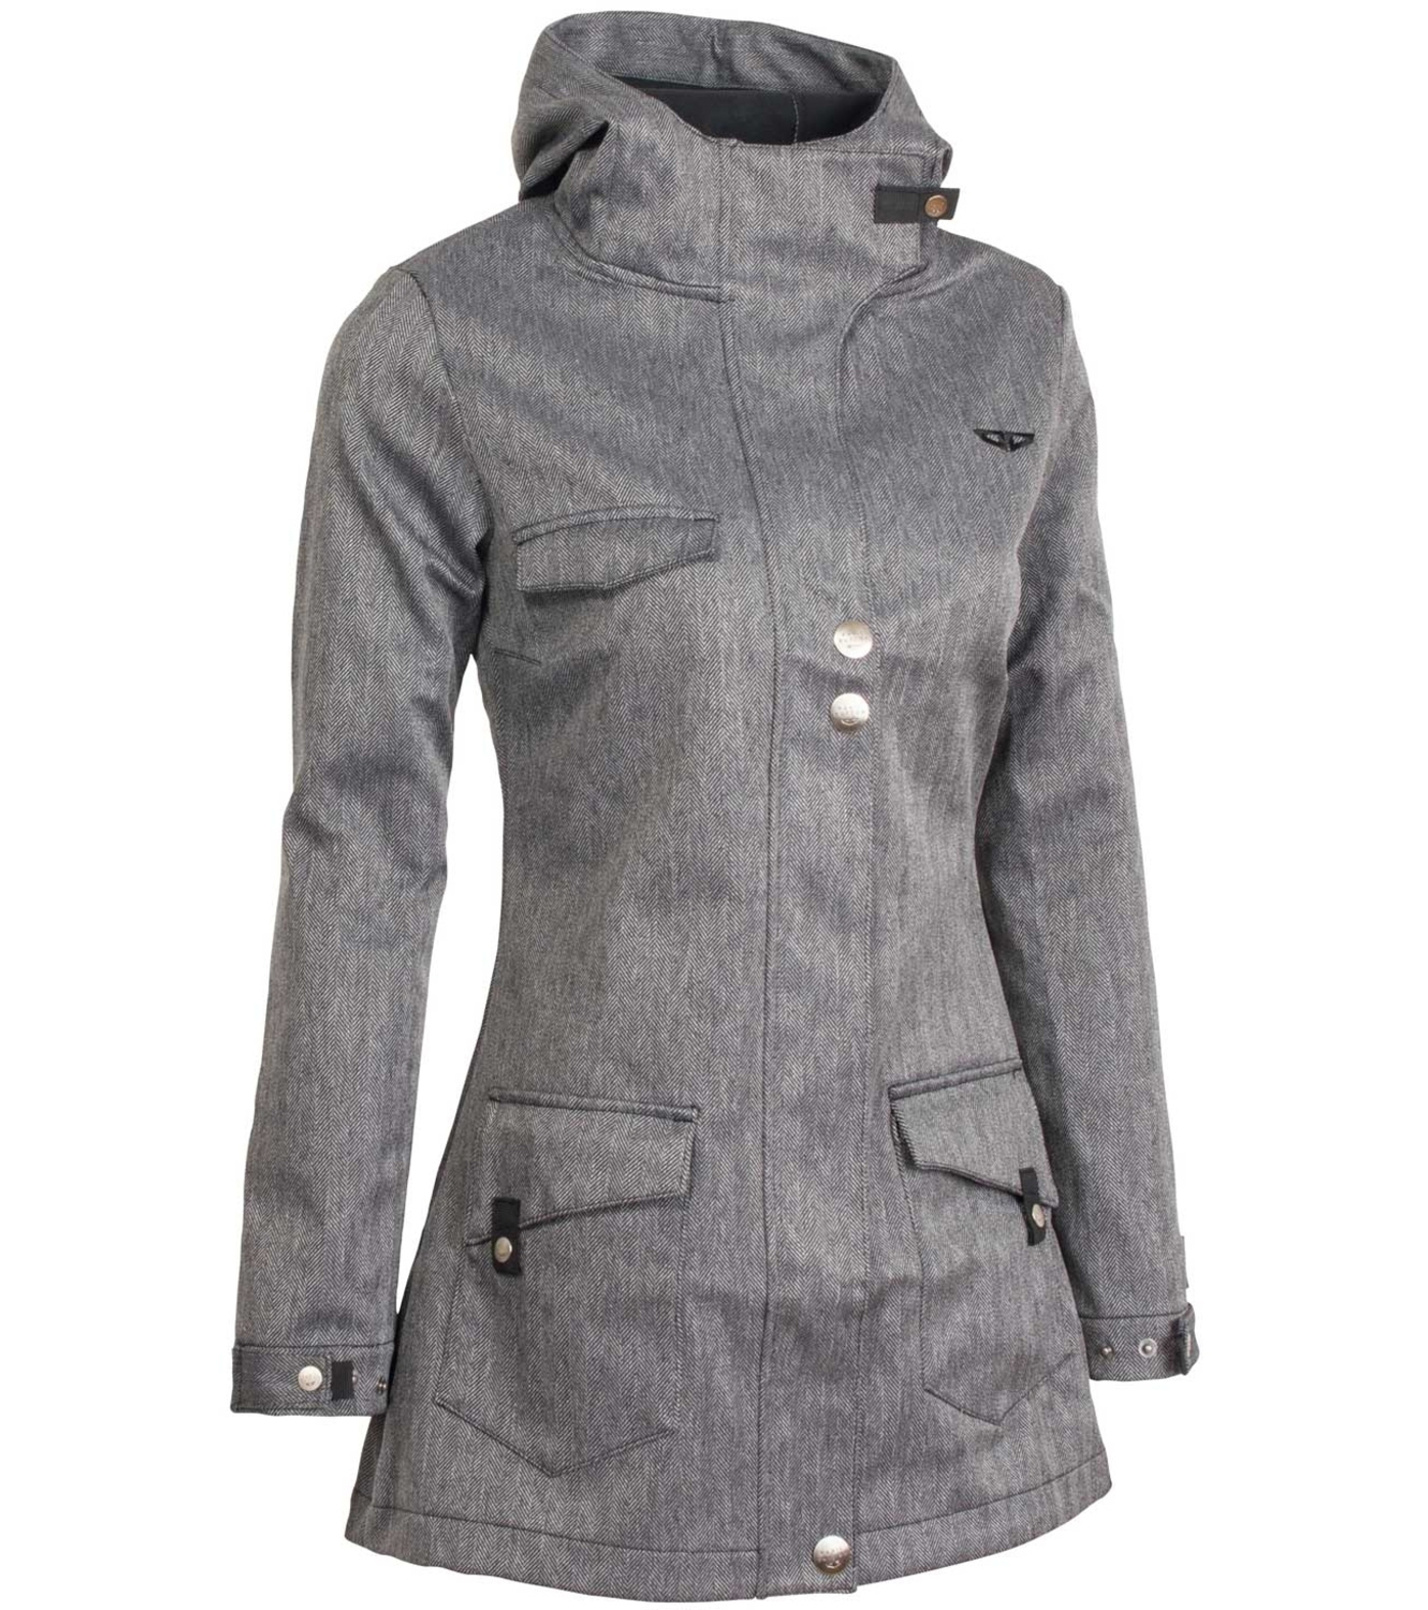 WOOX Kabát Grey Zone Ladies´ Parka Jacket wx1513704 34